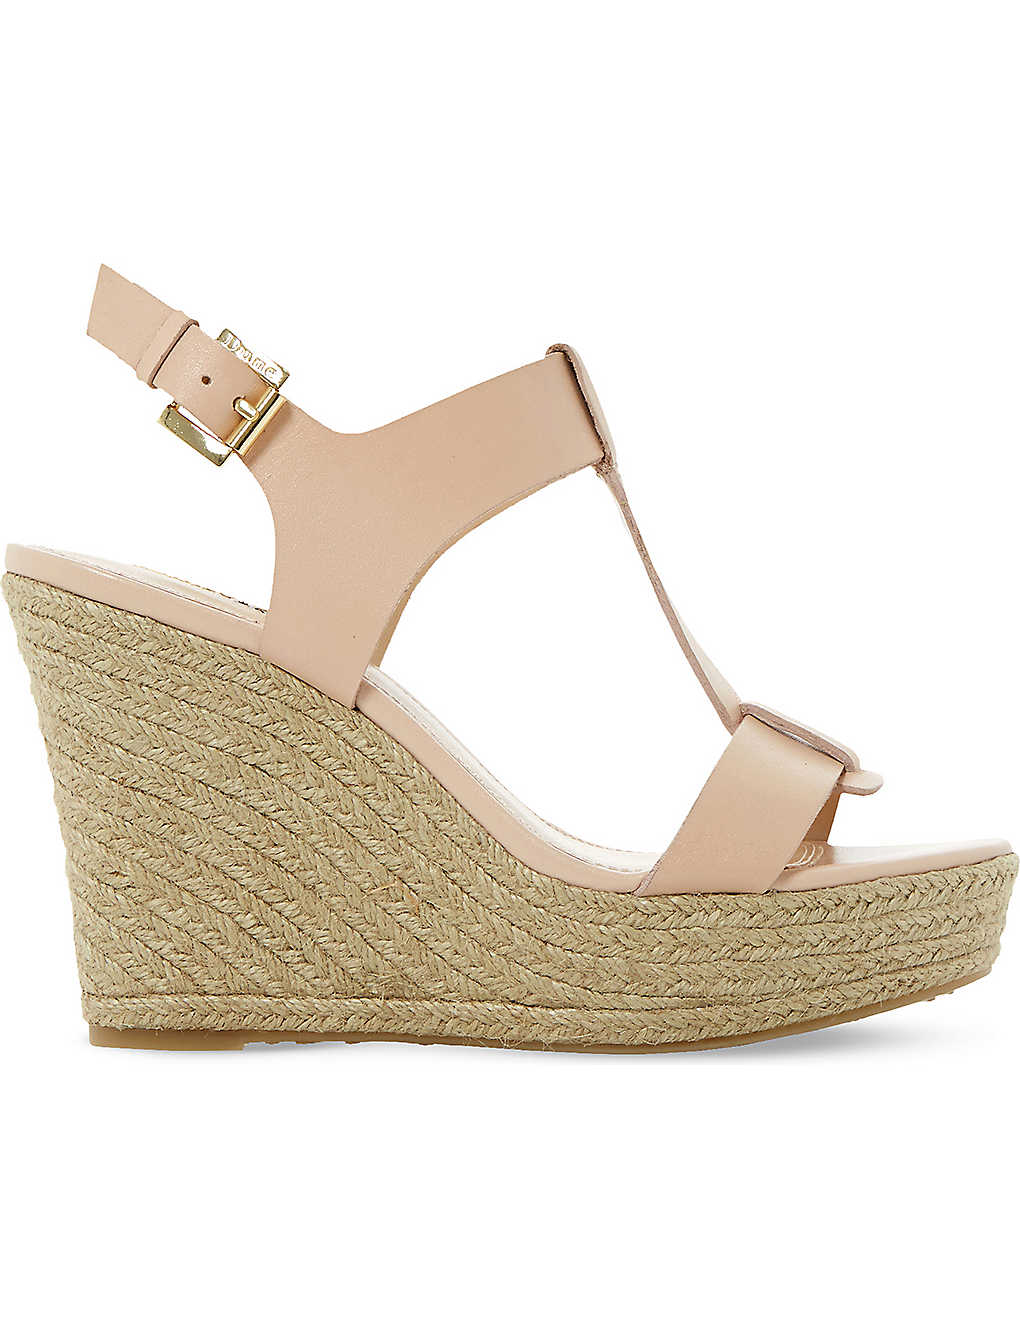 a23084d6fcf7 DUNE - Kelby espadrille wedge sandals